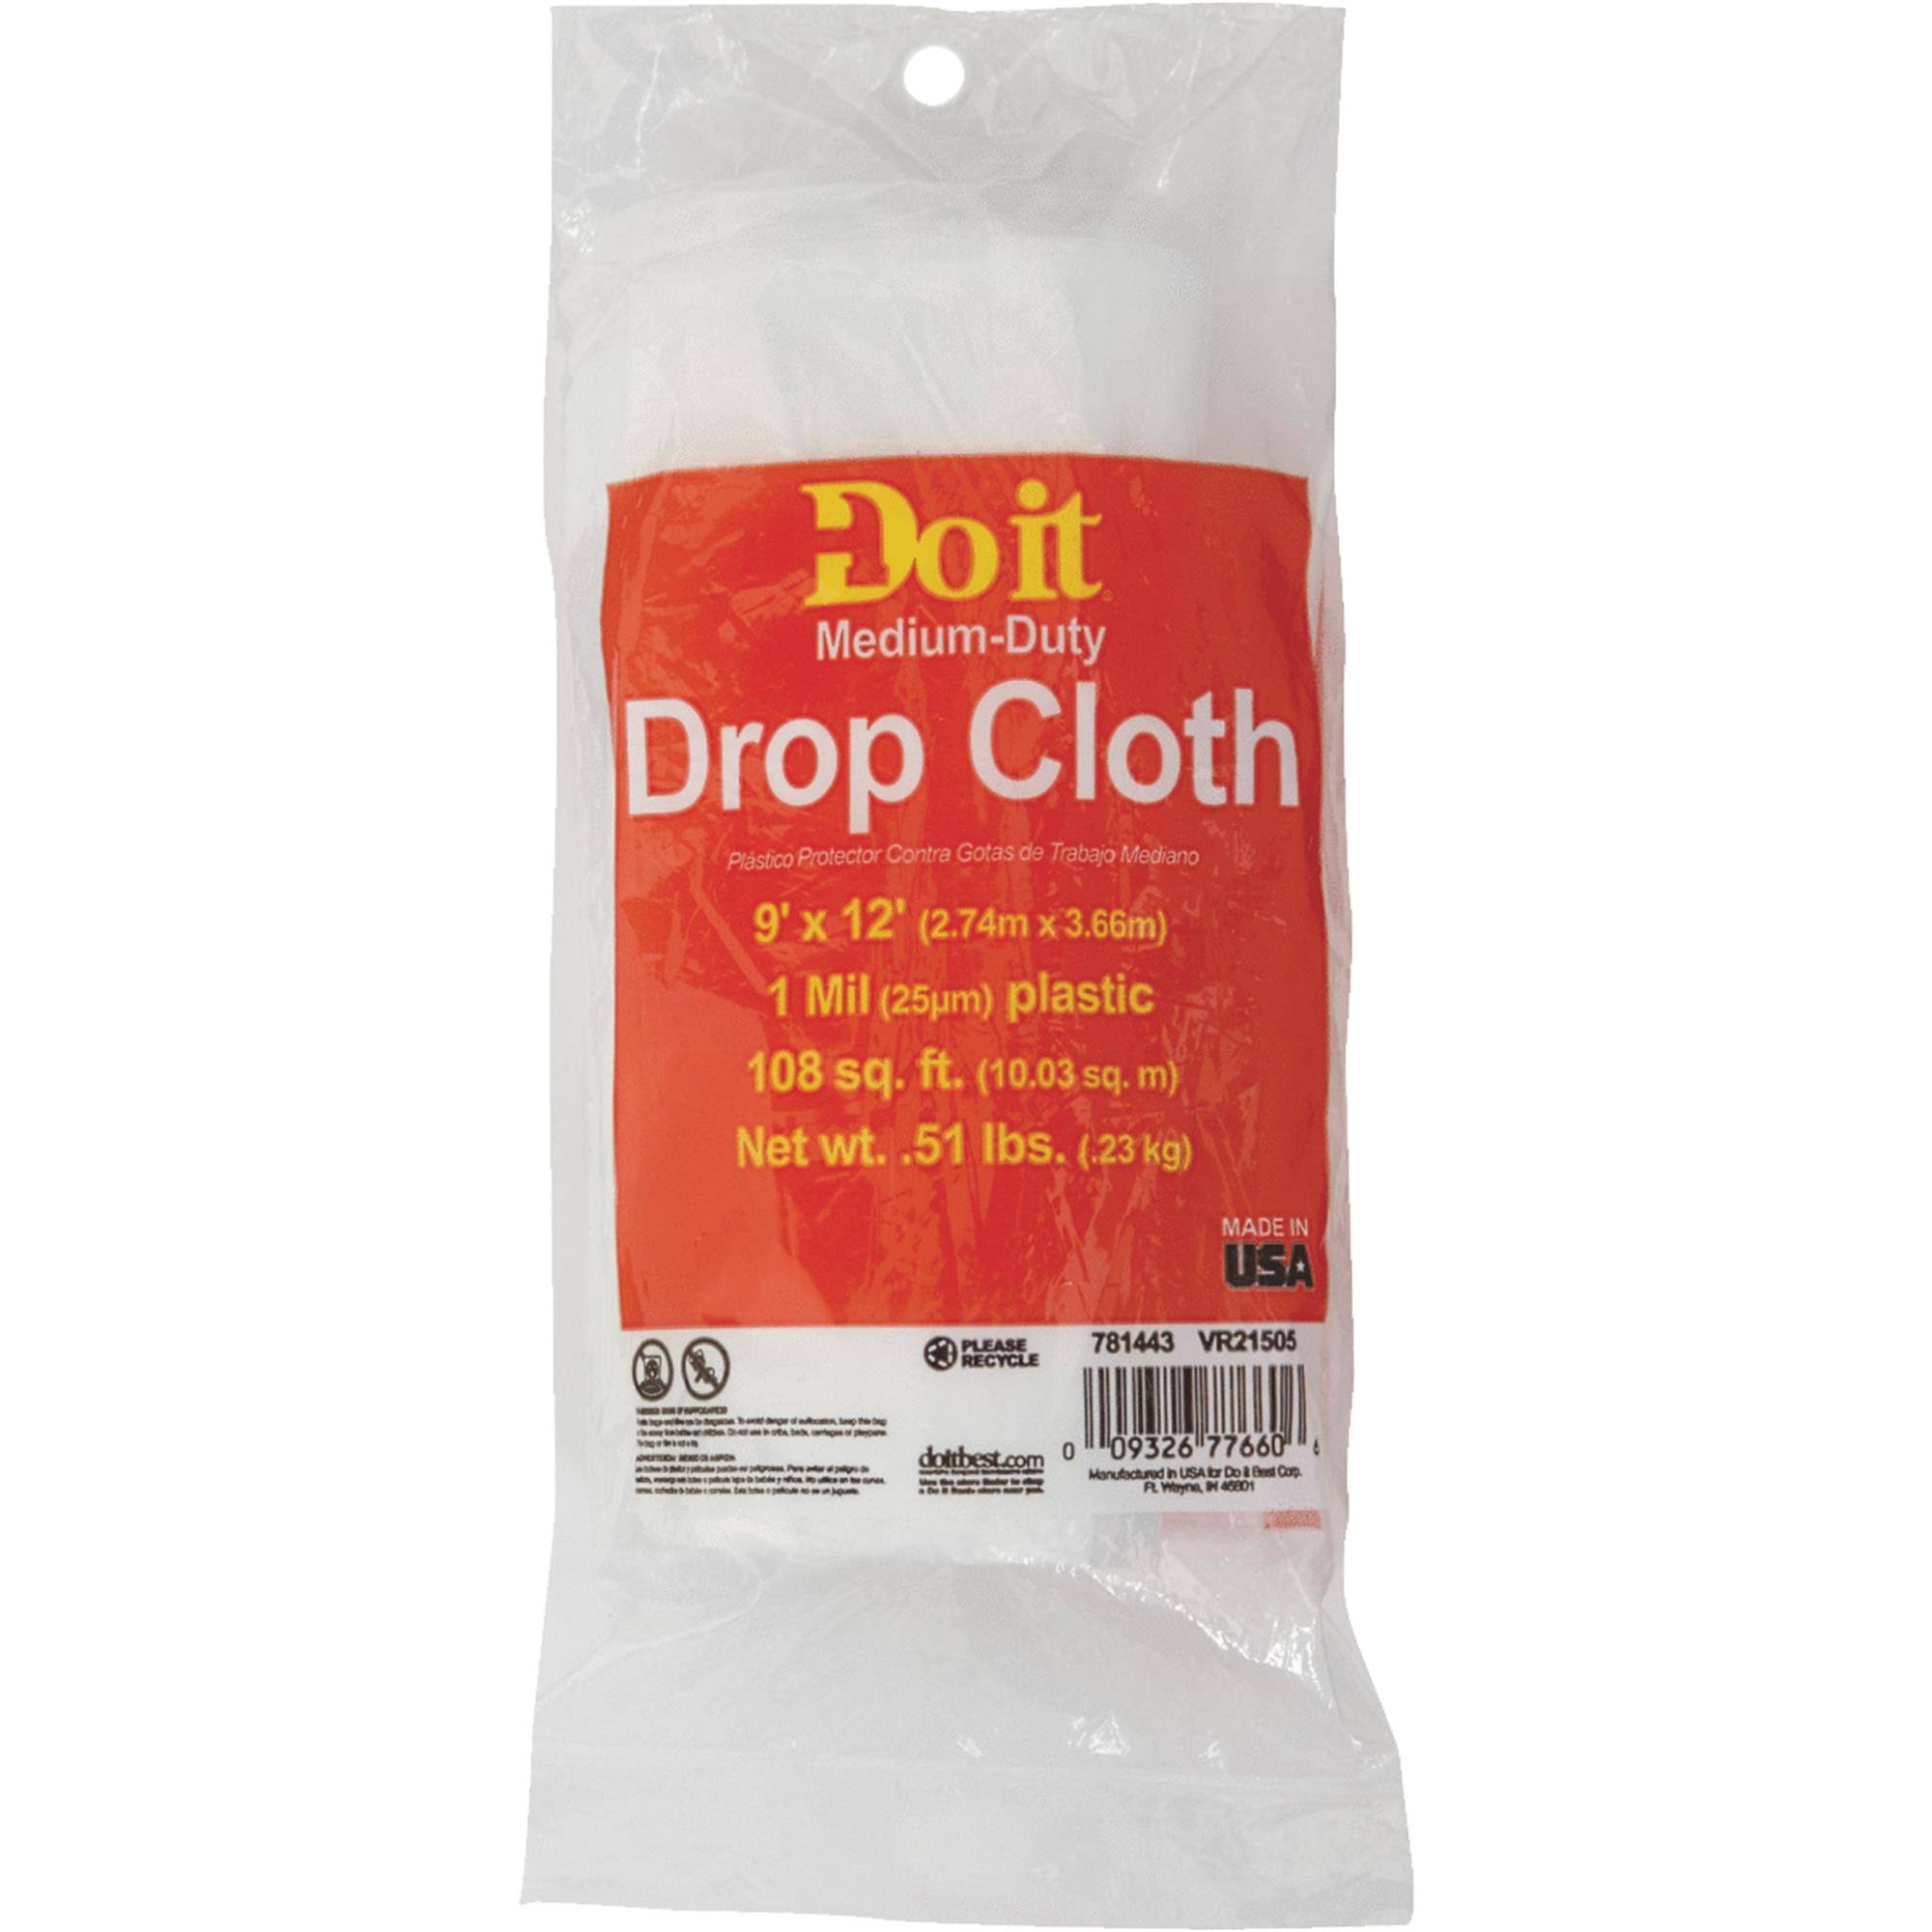 Do it Plastic Drop Cloth